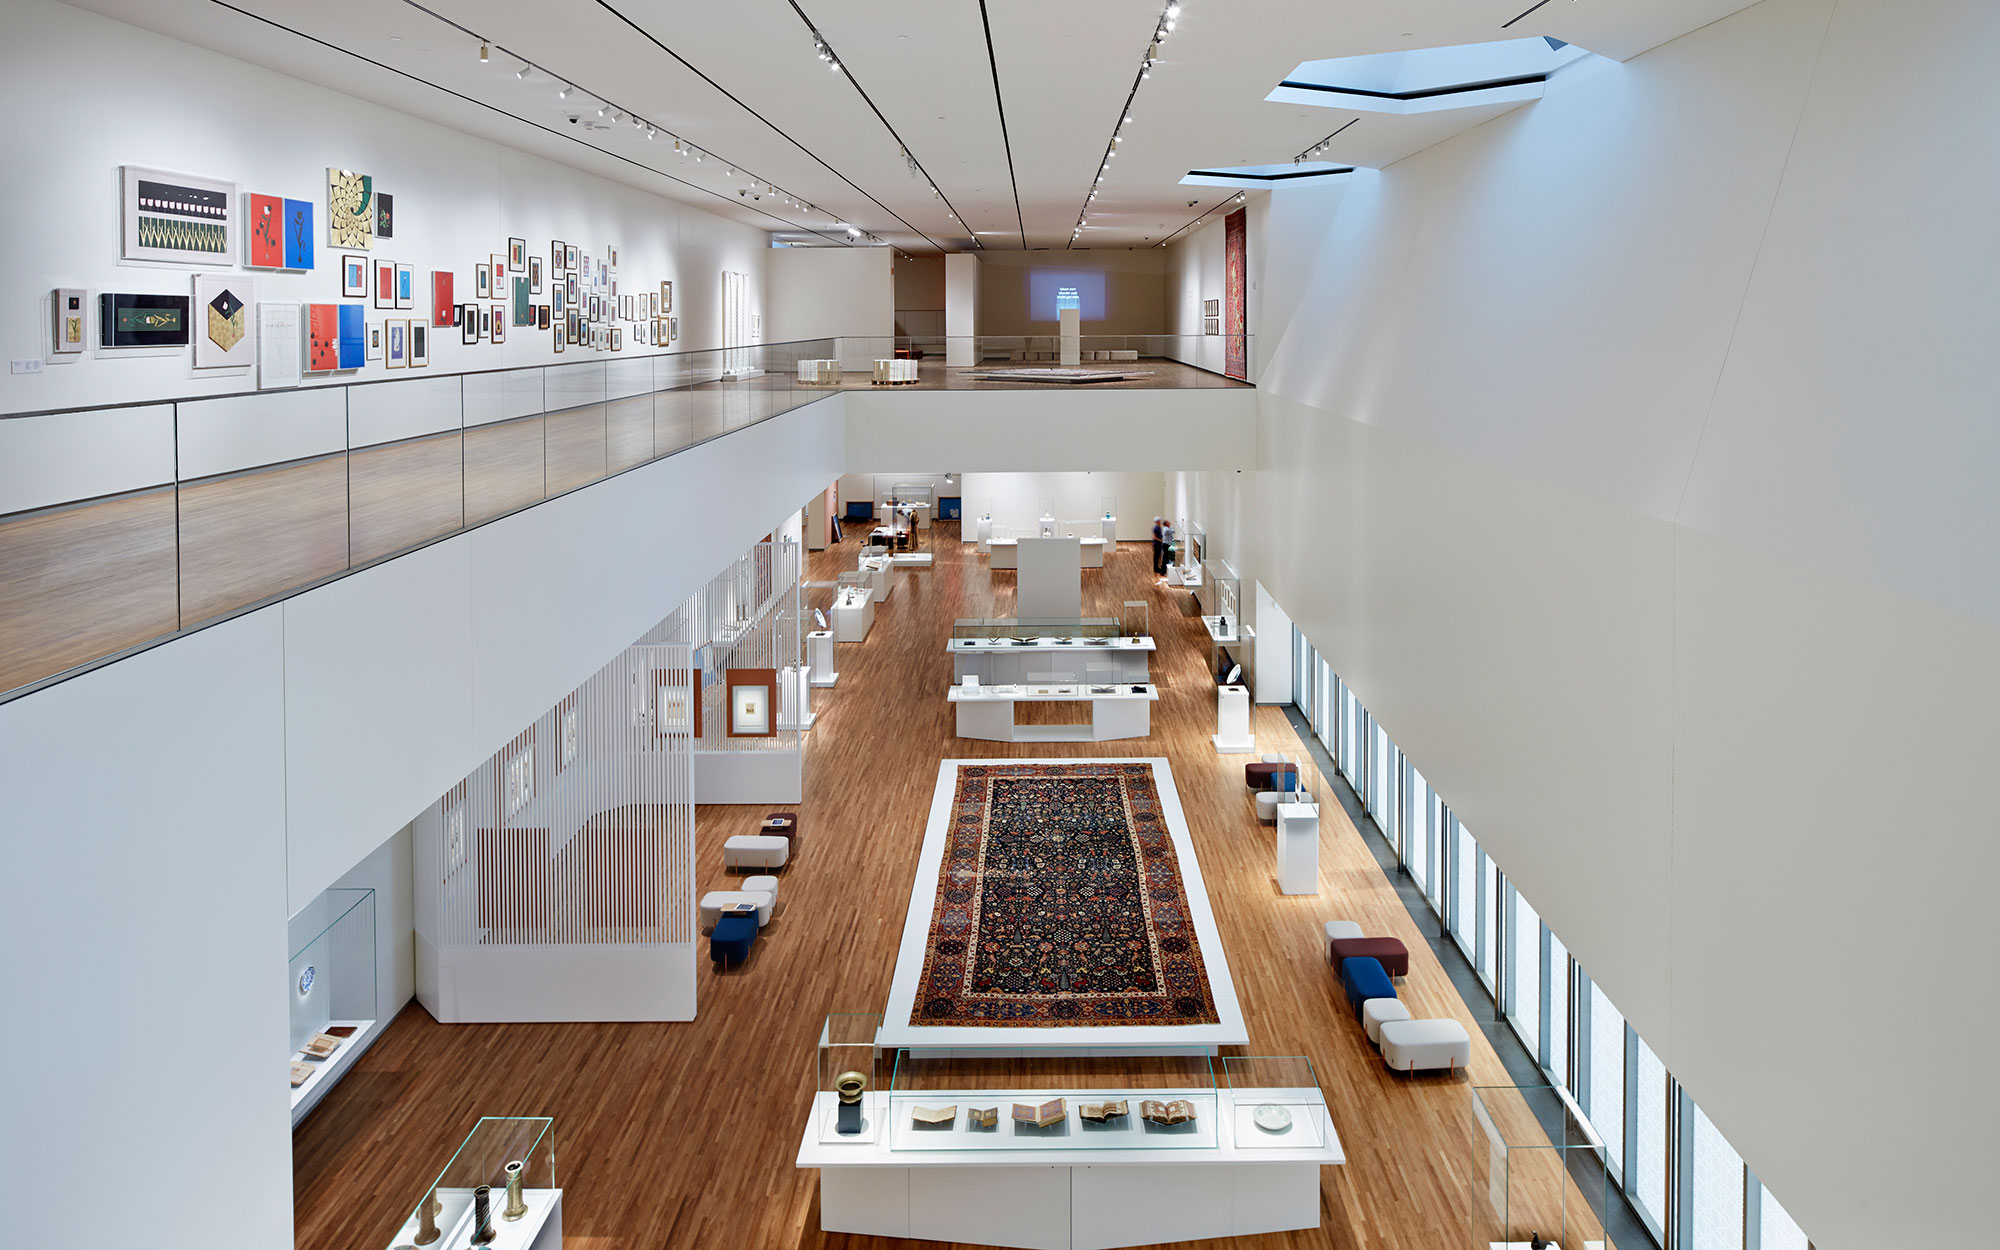 World's Coolest New Tourist Attractions 2015: Aga Khan Museum, Toronto